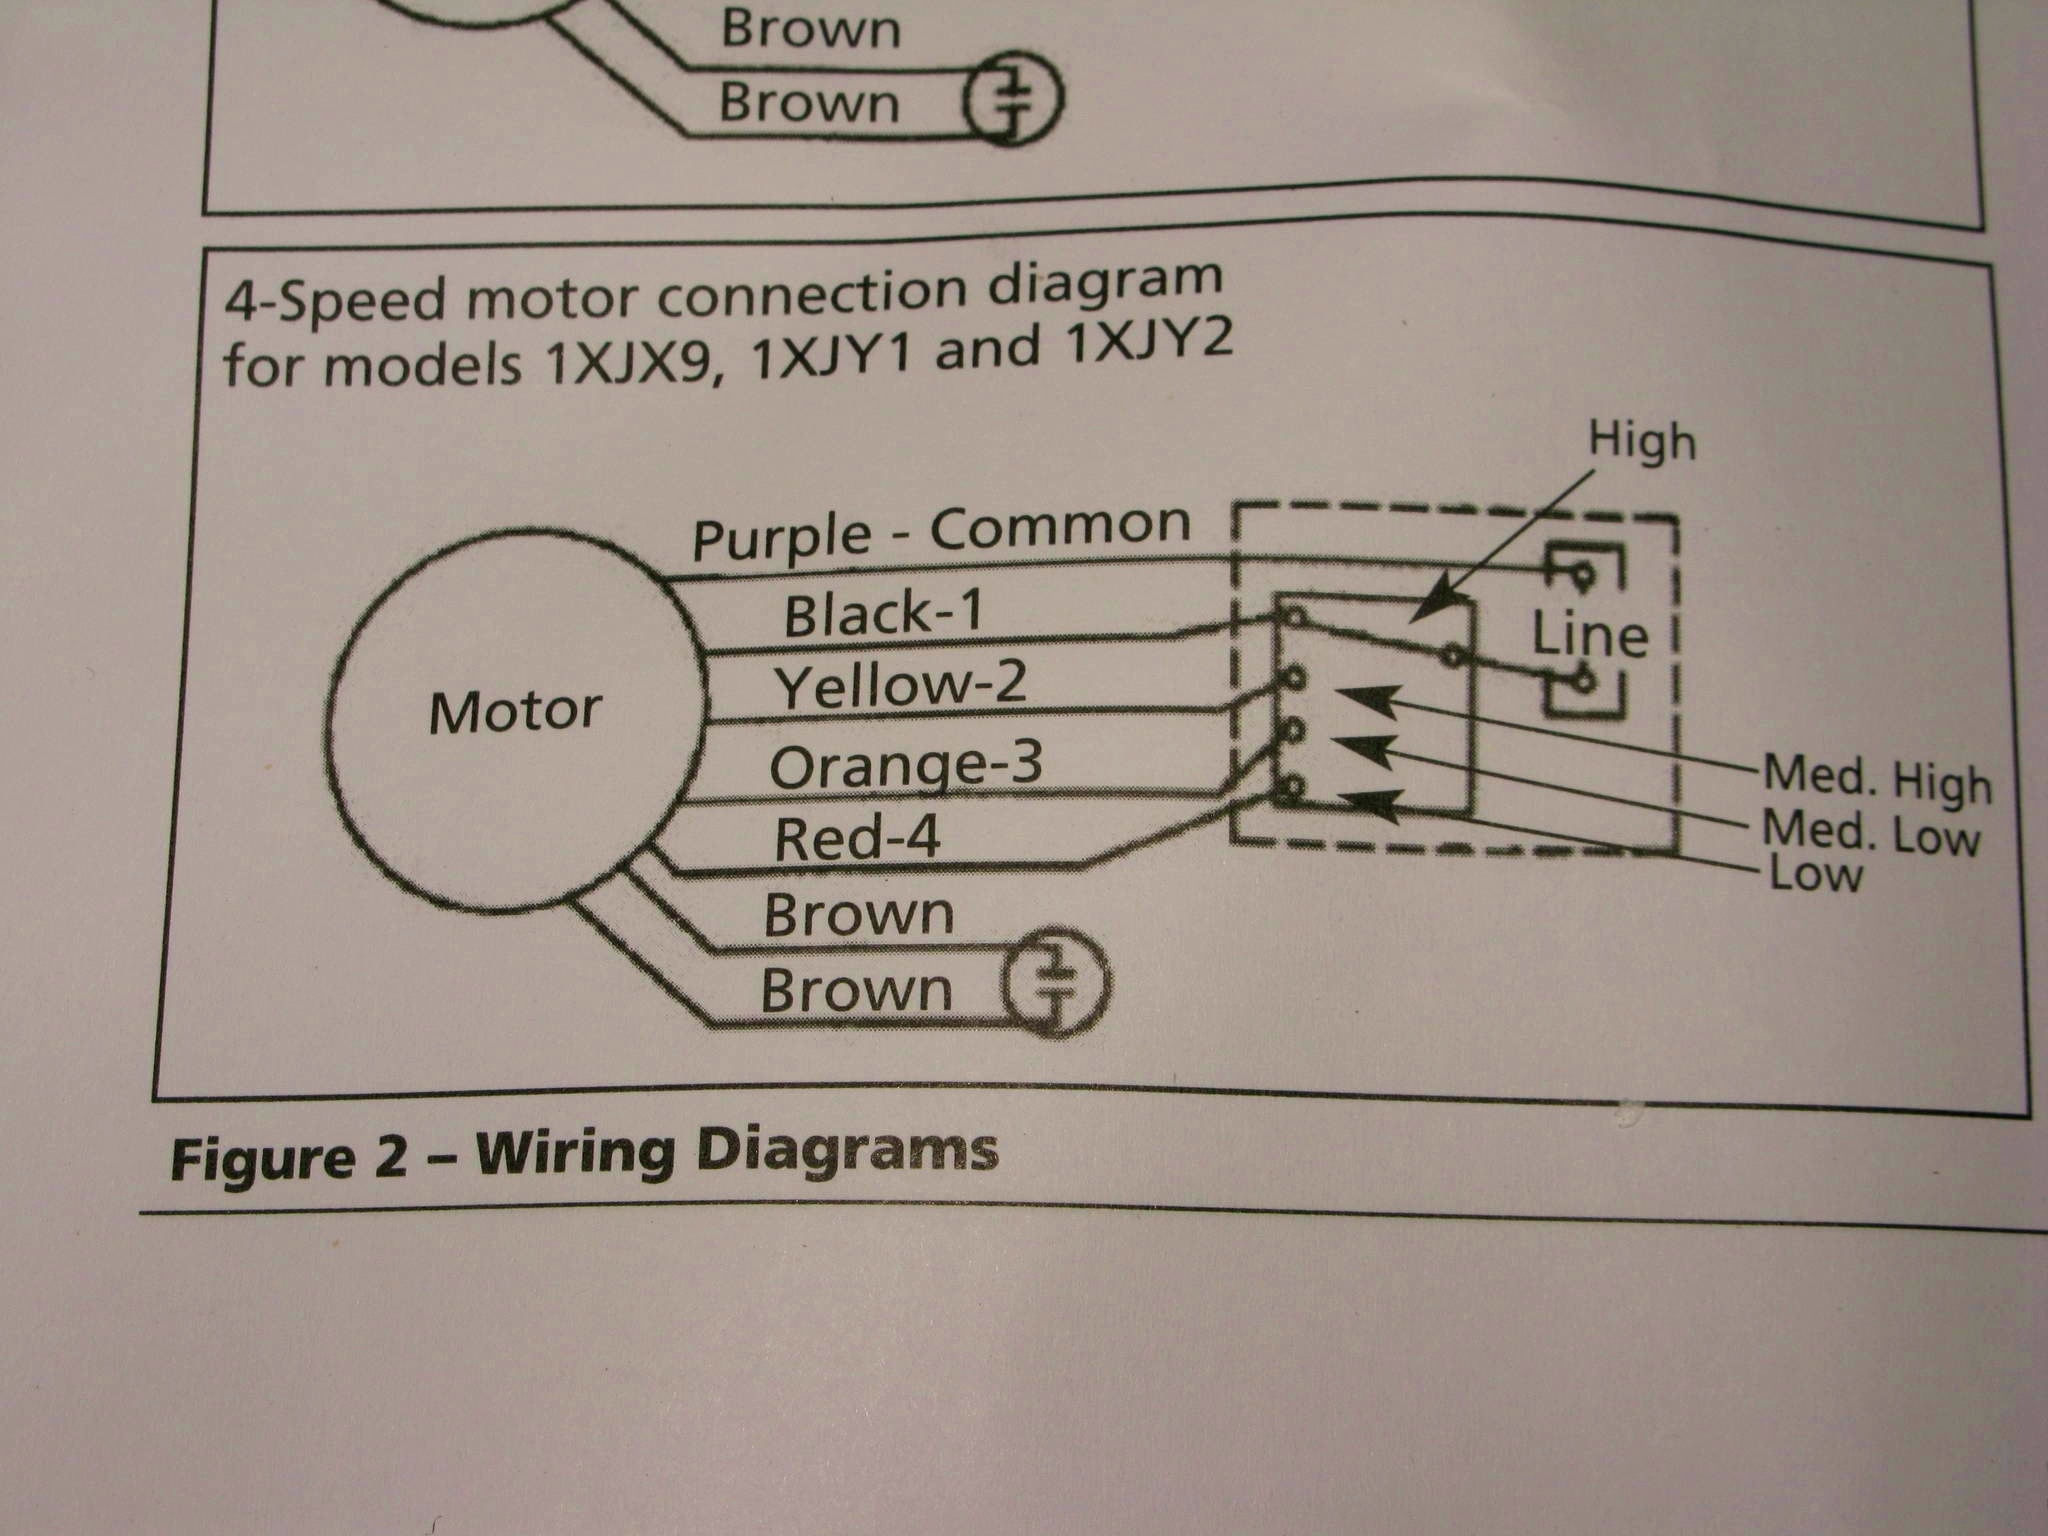 baldor single phase motor wiring diagram | free wiring diagram single phase reversible motor wiring diagram single phase electric motor wiring